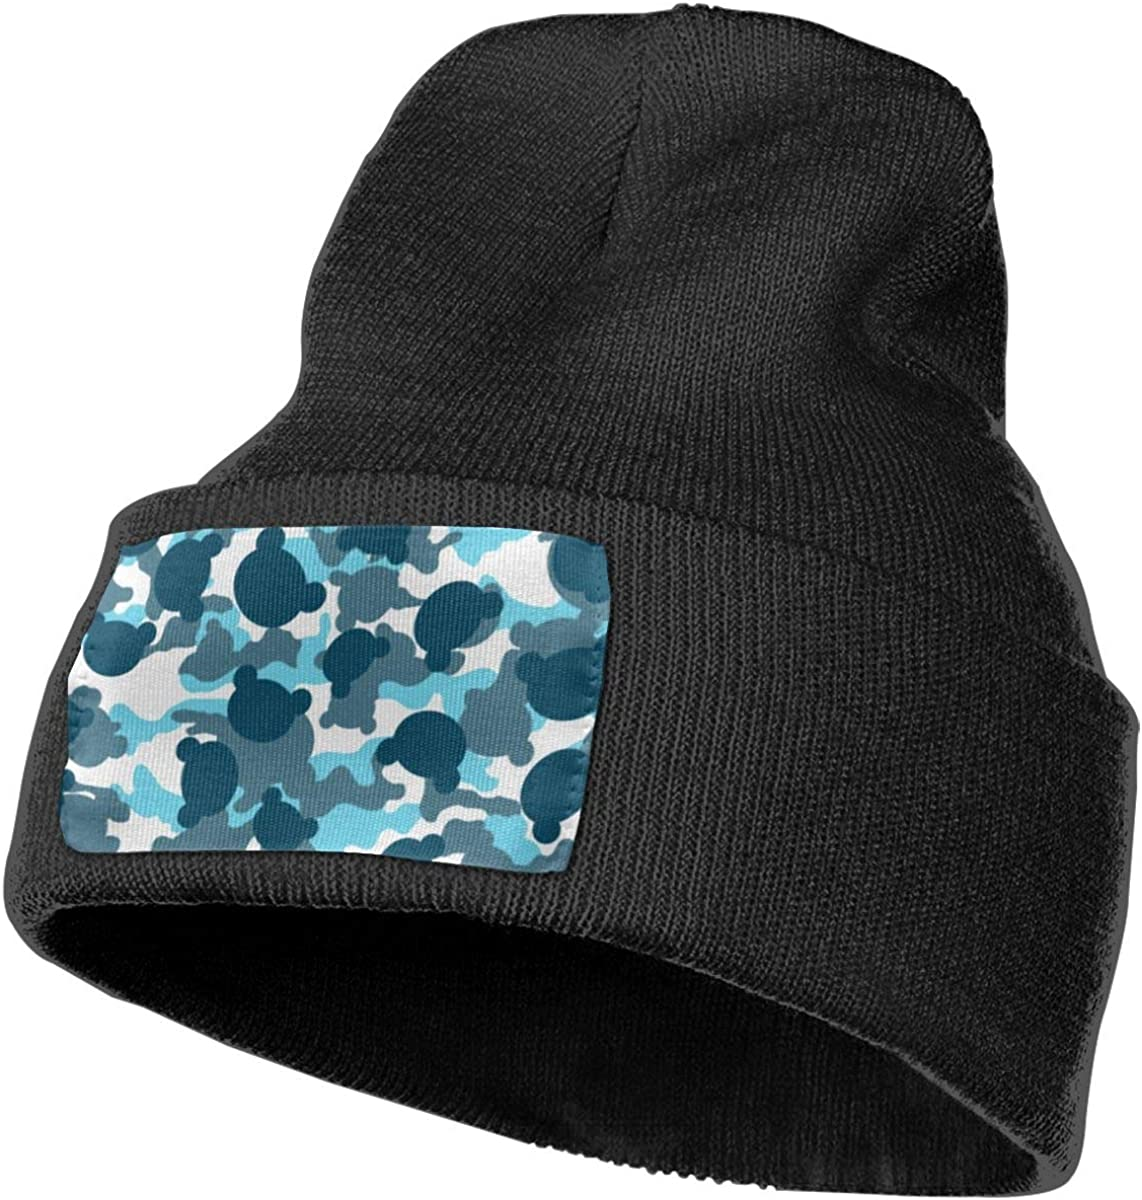 JimHappy Camouflage Blue Hat for Men and Women Winter Warm Hats Knit Slouchy Thick Skull Cap Black